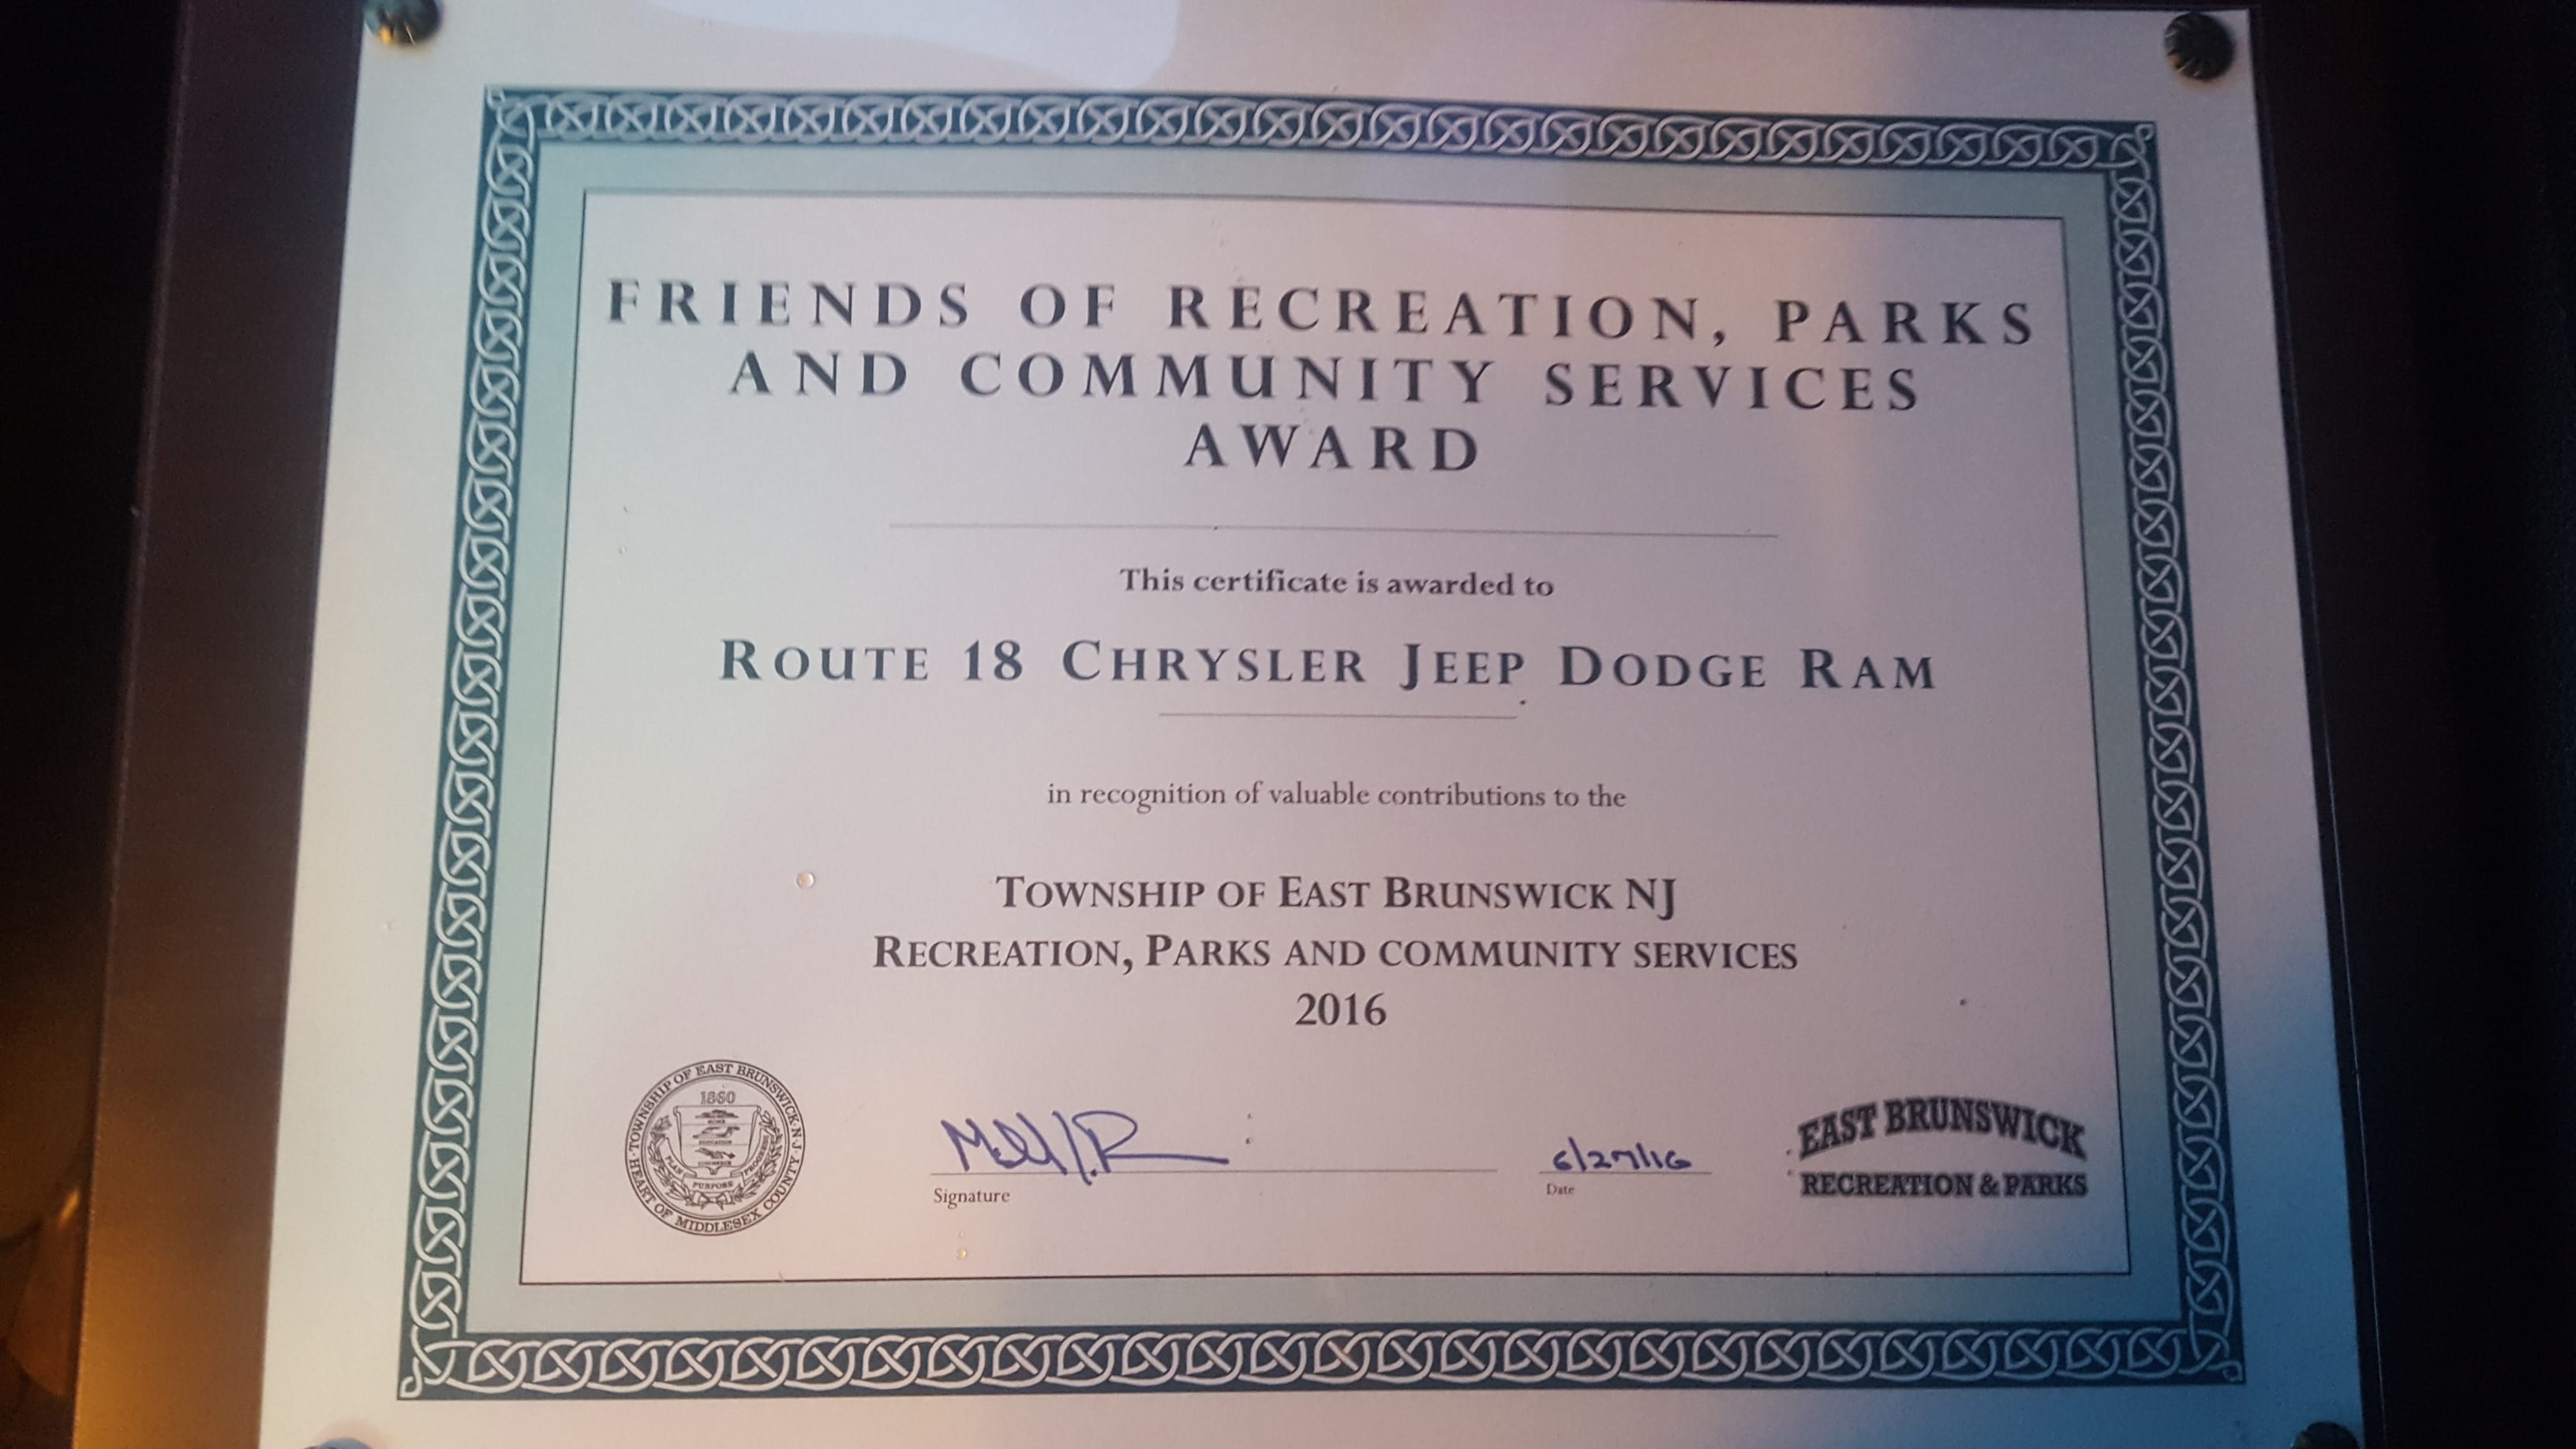 East Brunswick Friends of Recreation, Parks and Community Services Business Award